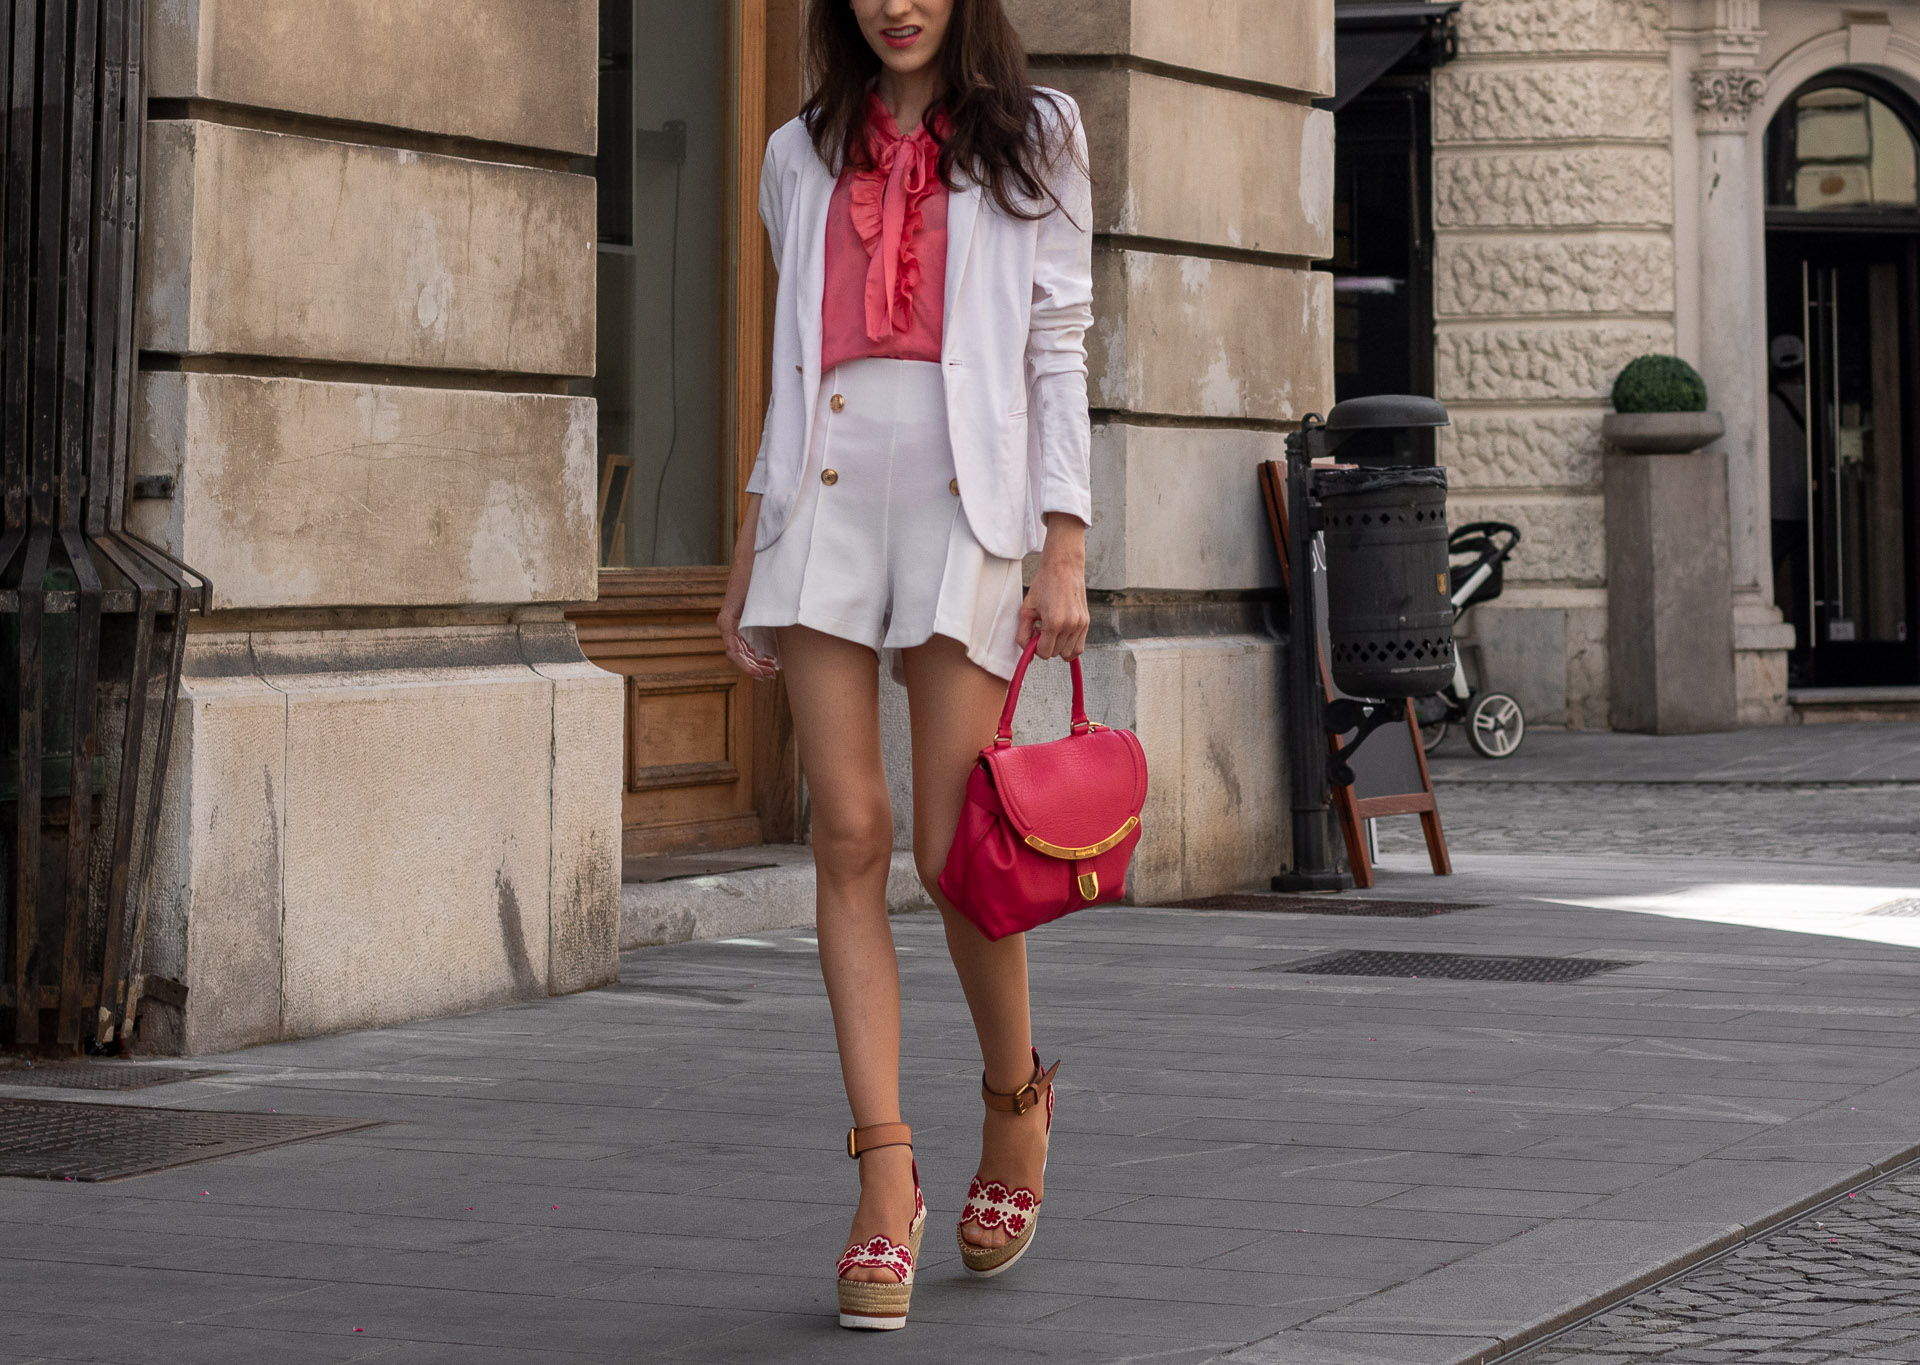 Fashion Blogger Veronika Lipar of Brunette from Wall Street dressed in See by Chloé wedge espadrille white shorts white blazer orange floppy tie blouse pink top handle bag in the city